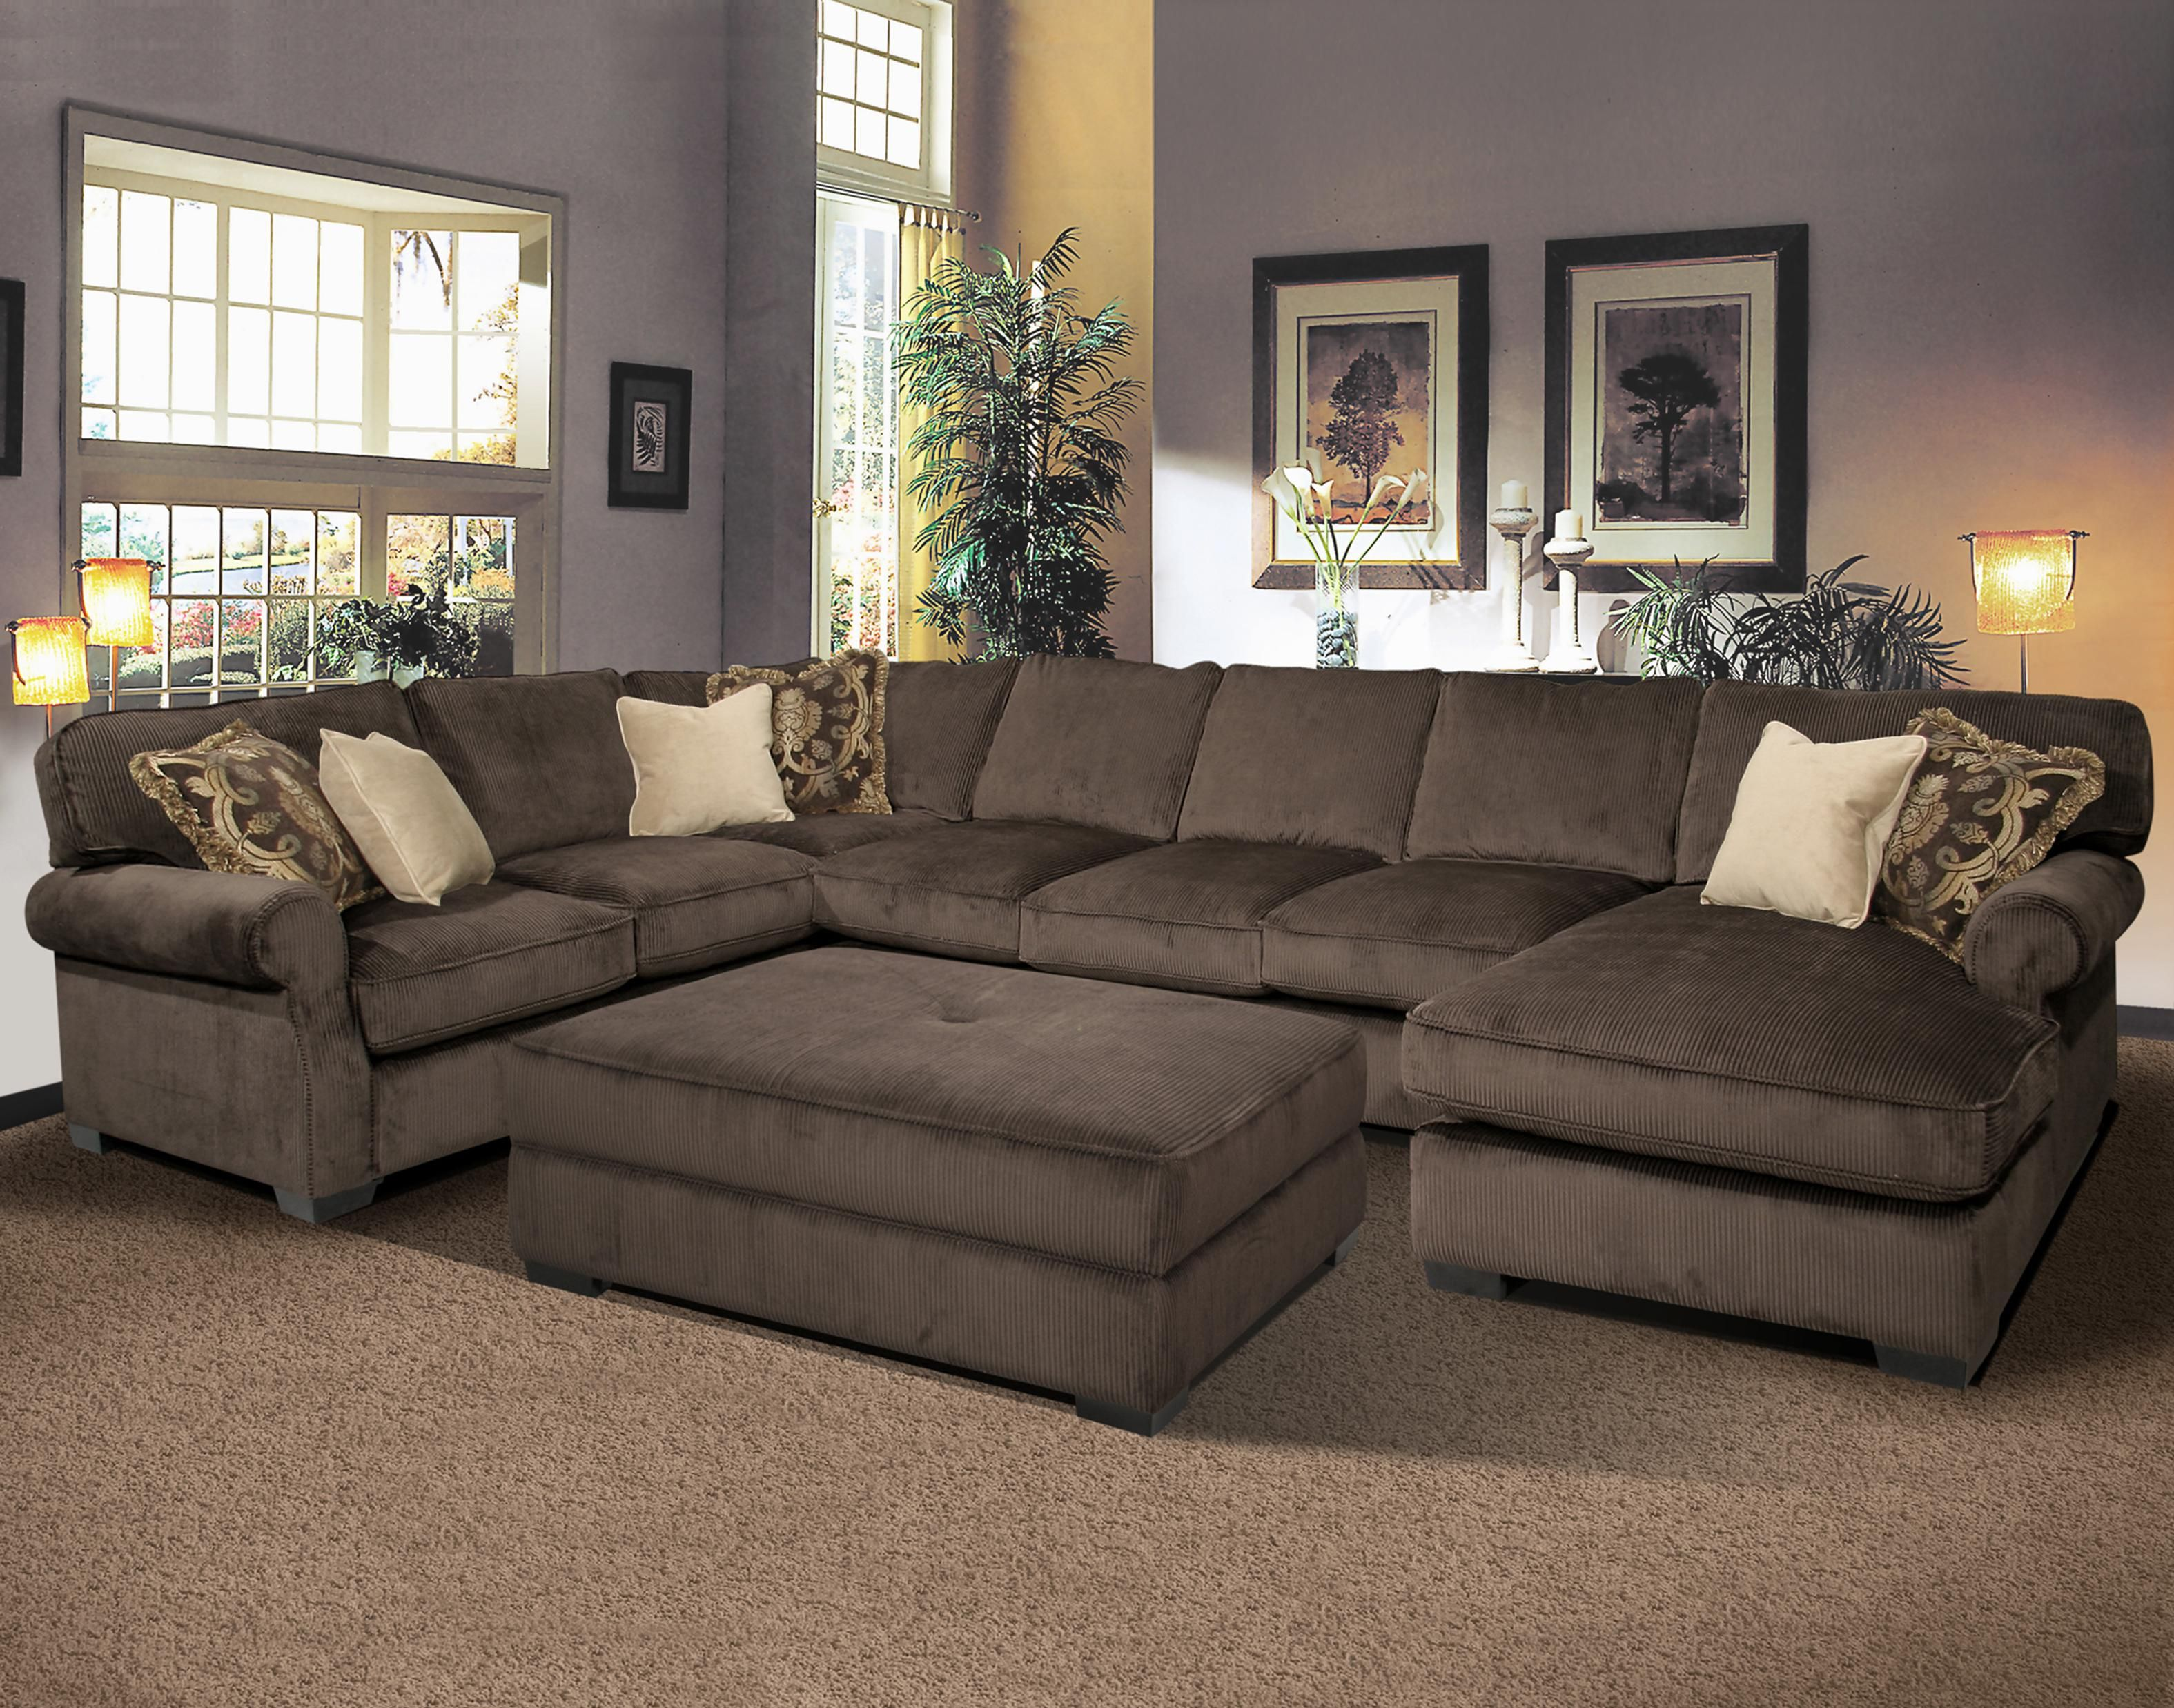 GRAND ISLAND LARGE 7 SEAT SECTIONAL SOFA WITH RIGHT SIDE CHAISE